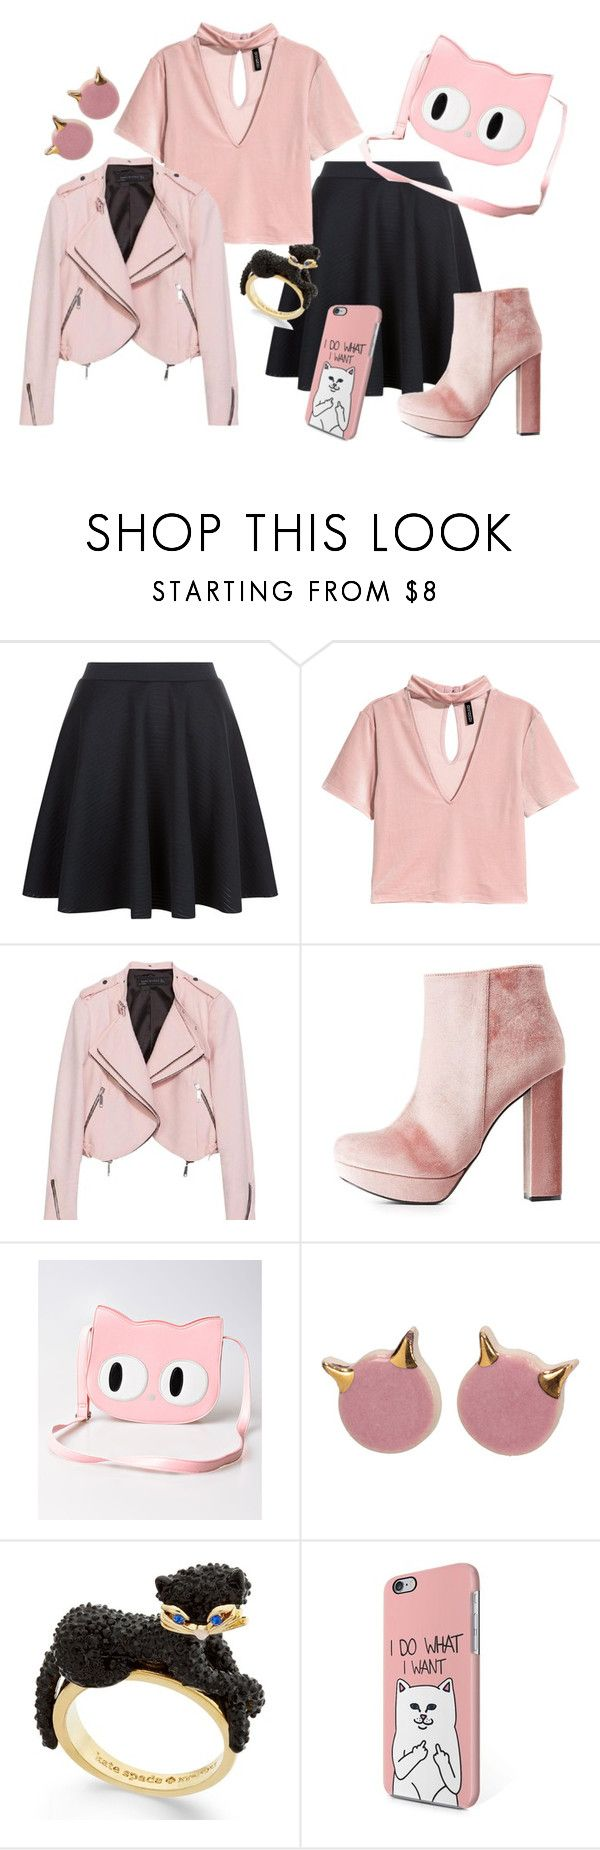 """""""Im with the cat"""" by forgetrules ❤ liked on Polyvore featuring Charlotte Russe, Banned and Kate Spade"""